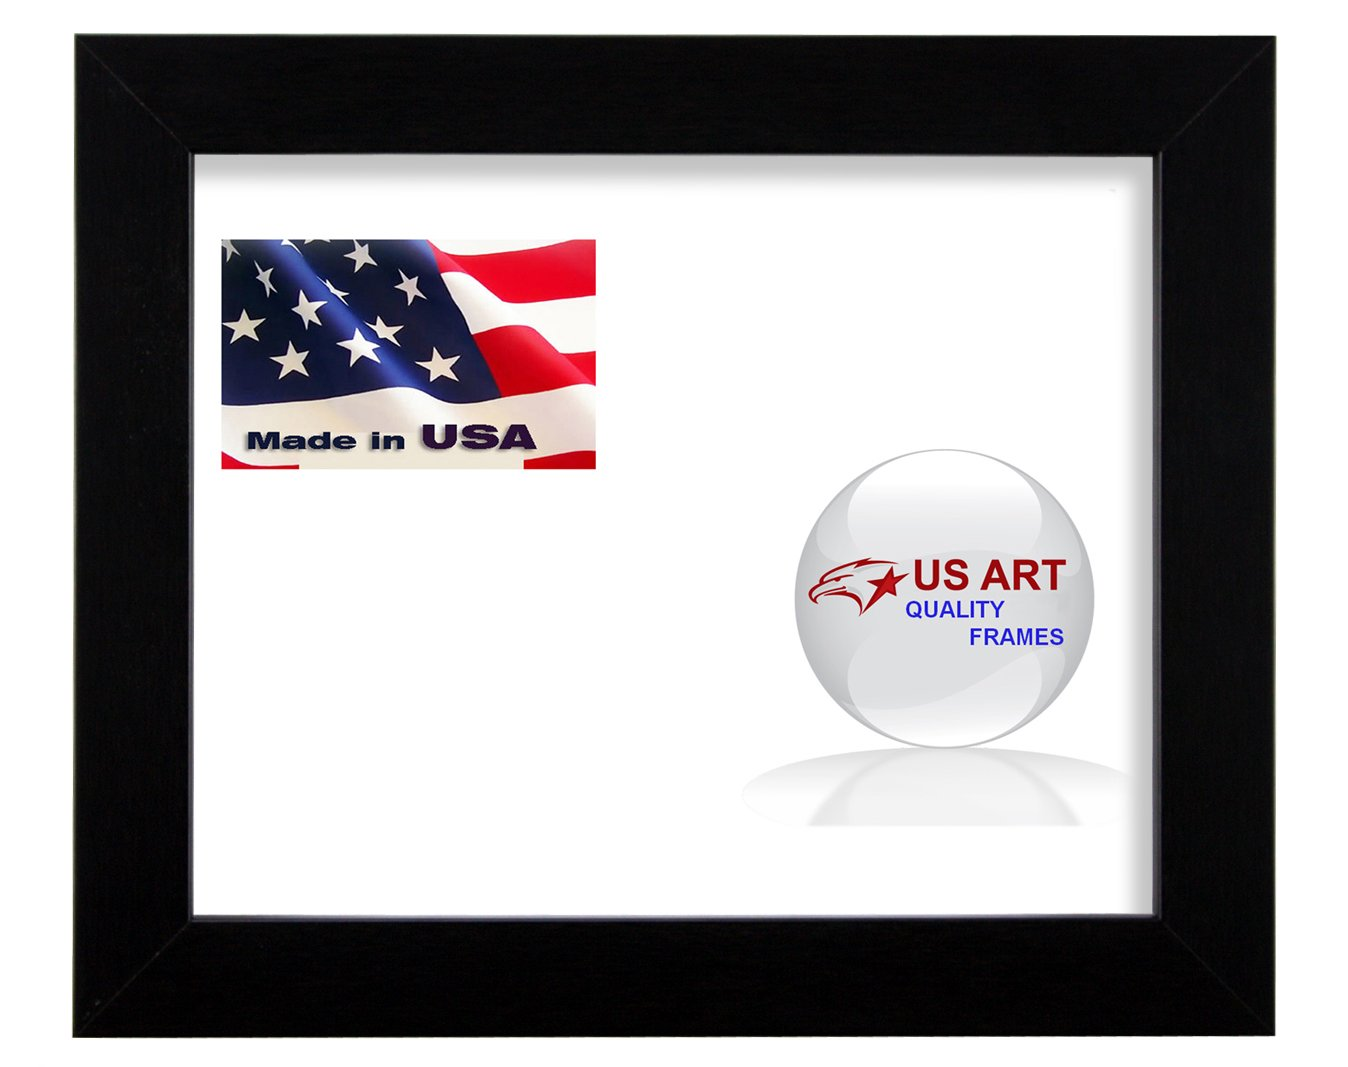 3x3 Custom Satin Black Wrapped Finish Picture Poster Photo Frame Wood Composite Mdf 1.25 inch Wide Moulding US Art